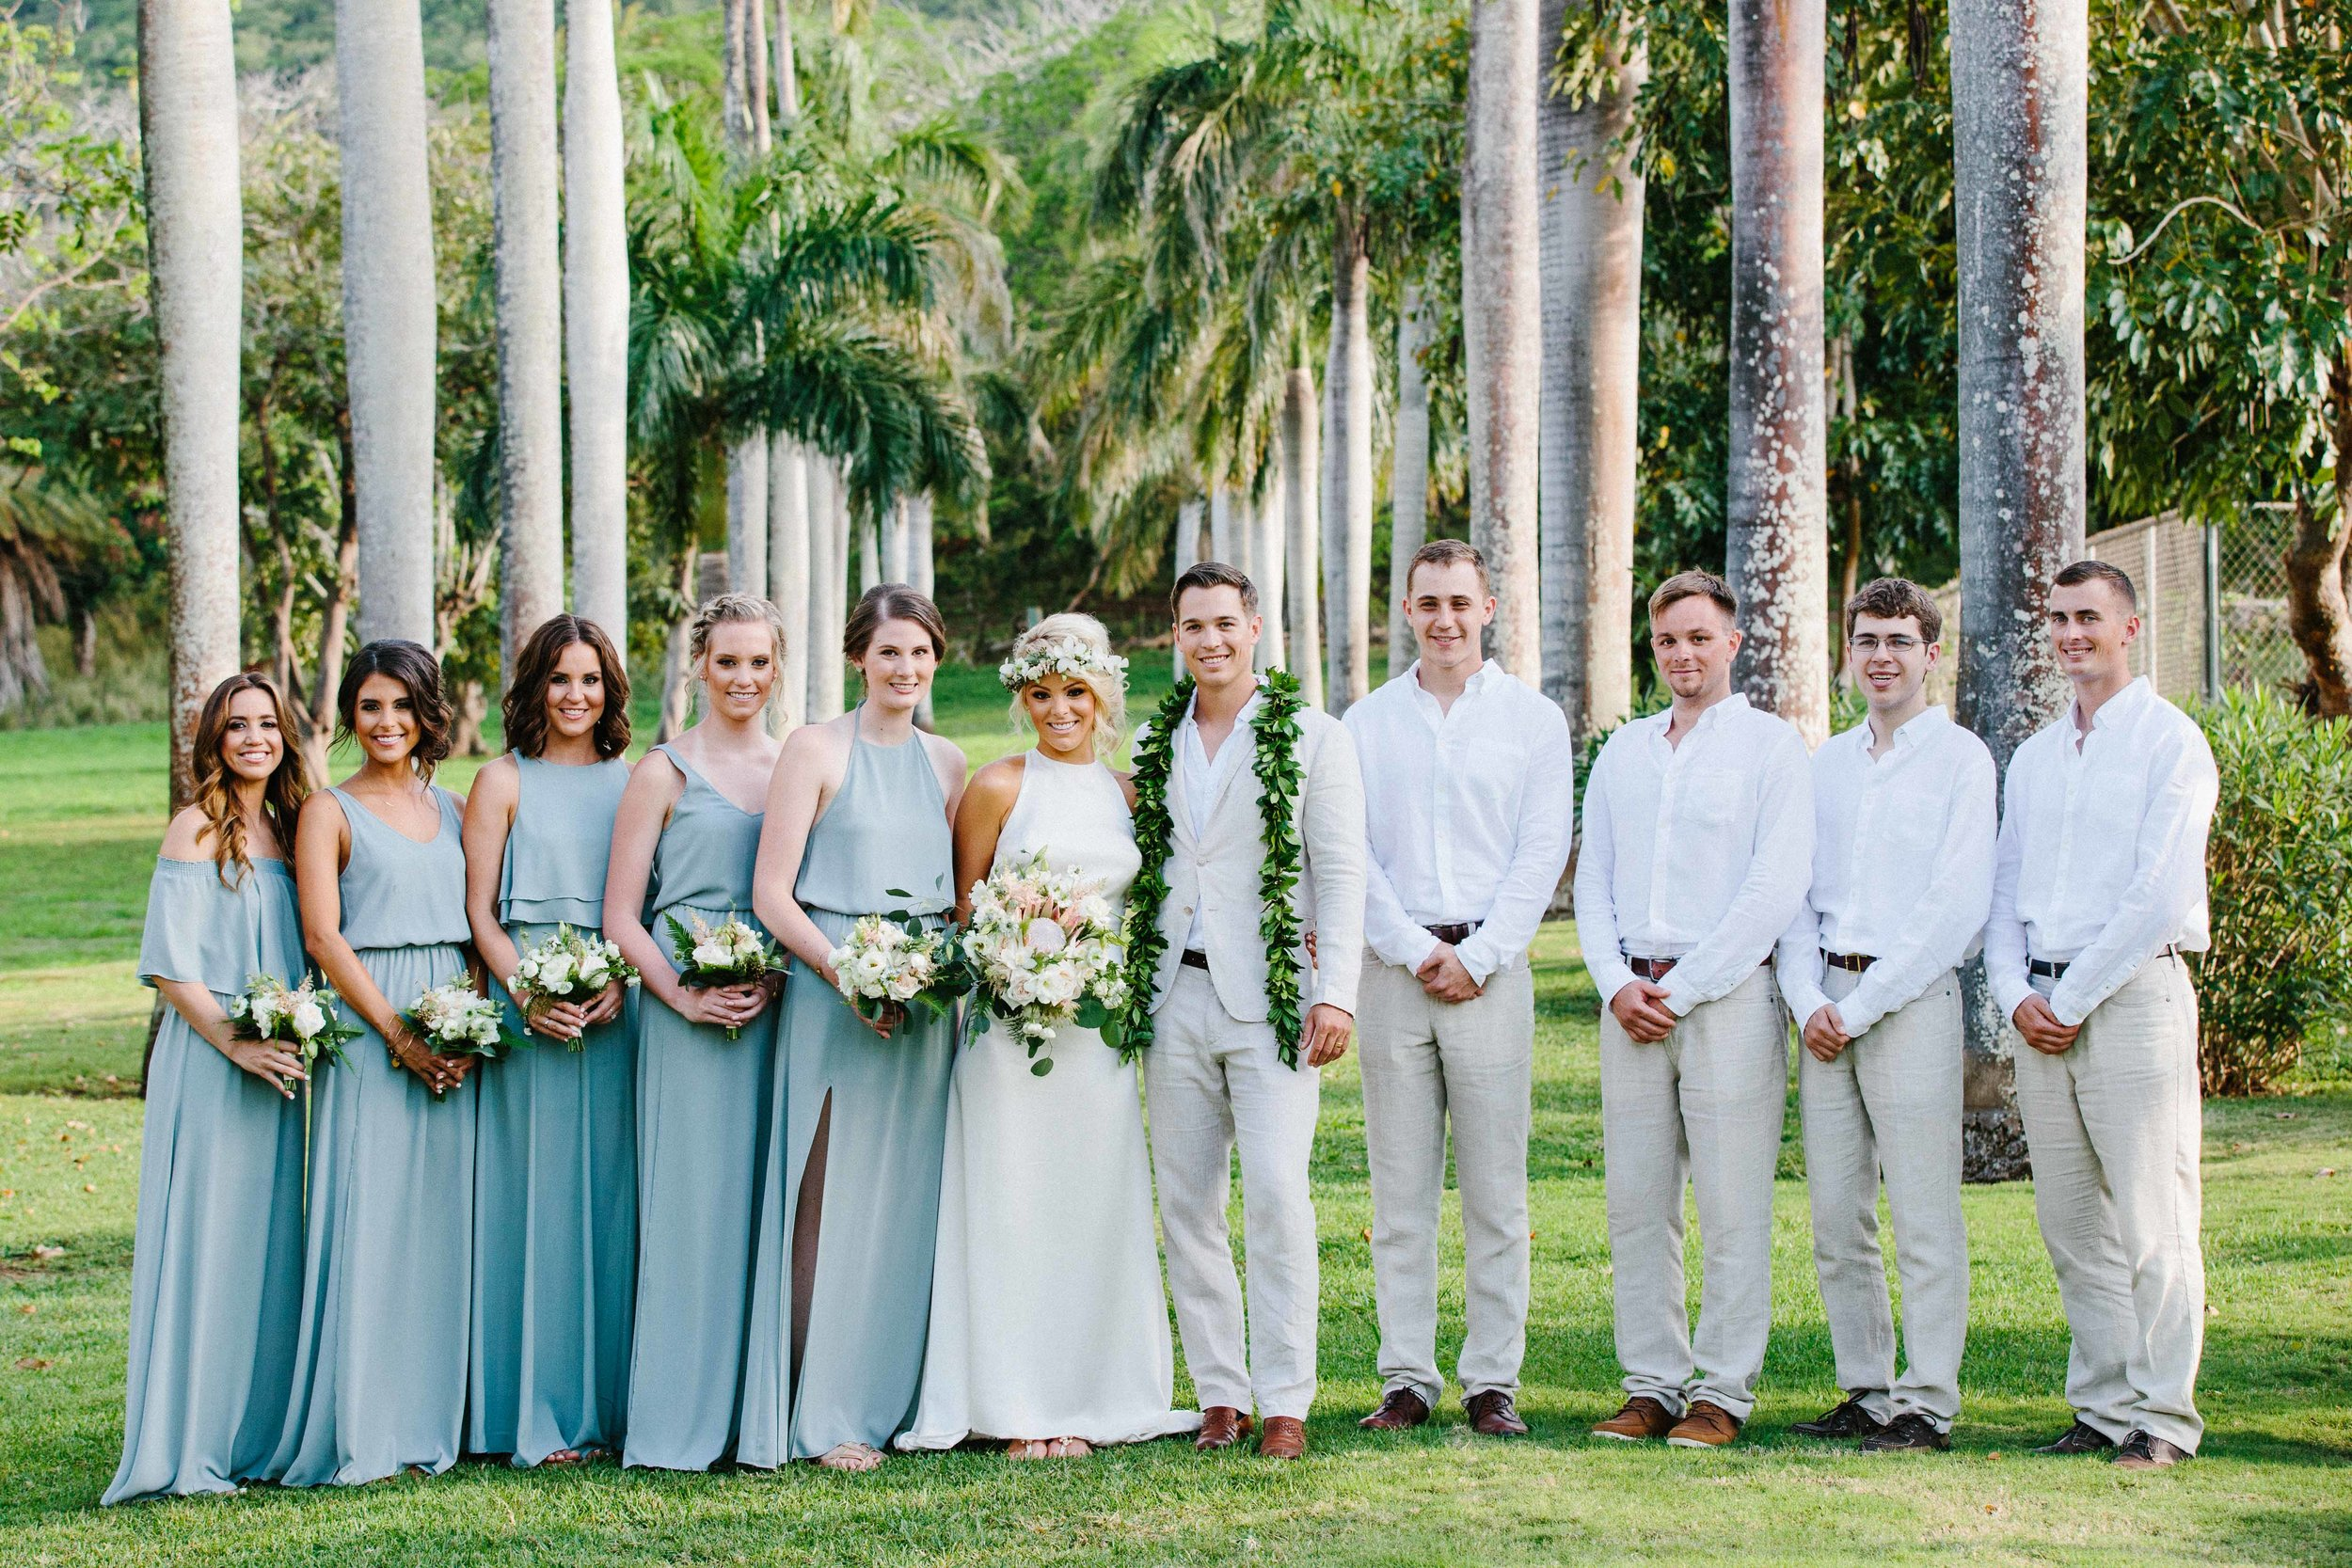 Friends Of The Newlyweds